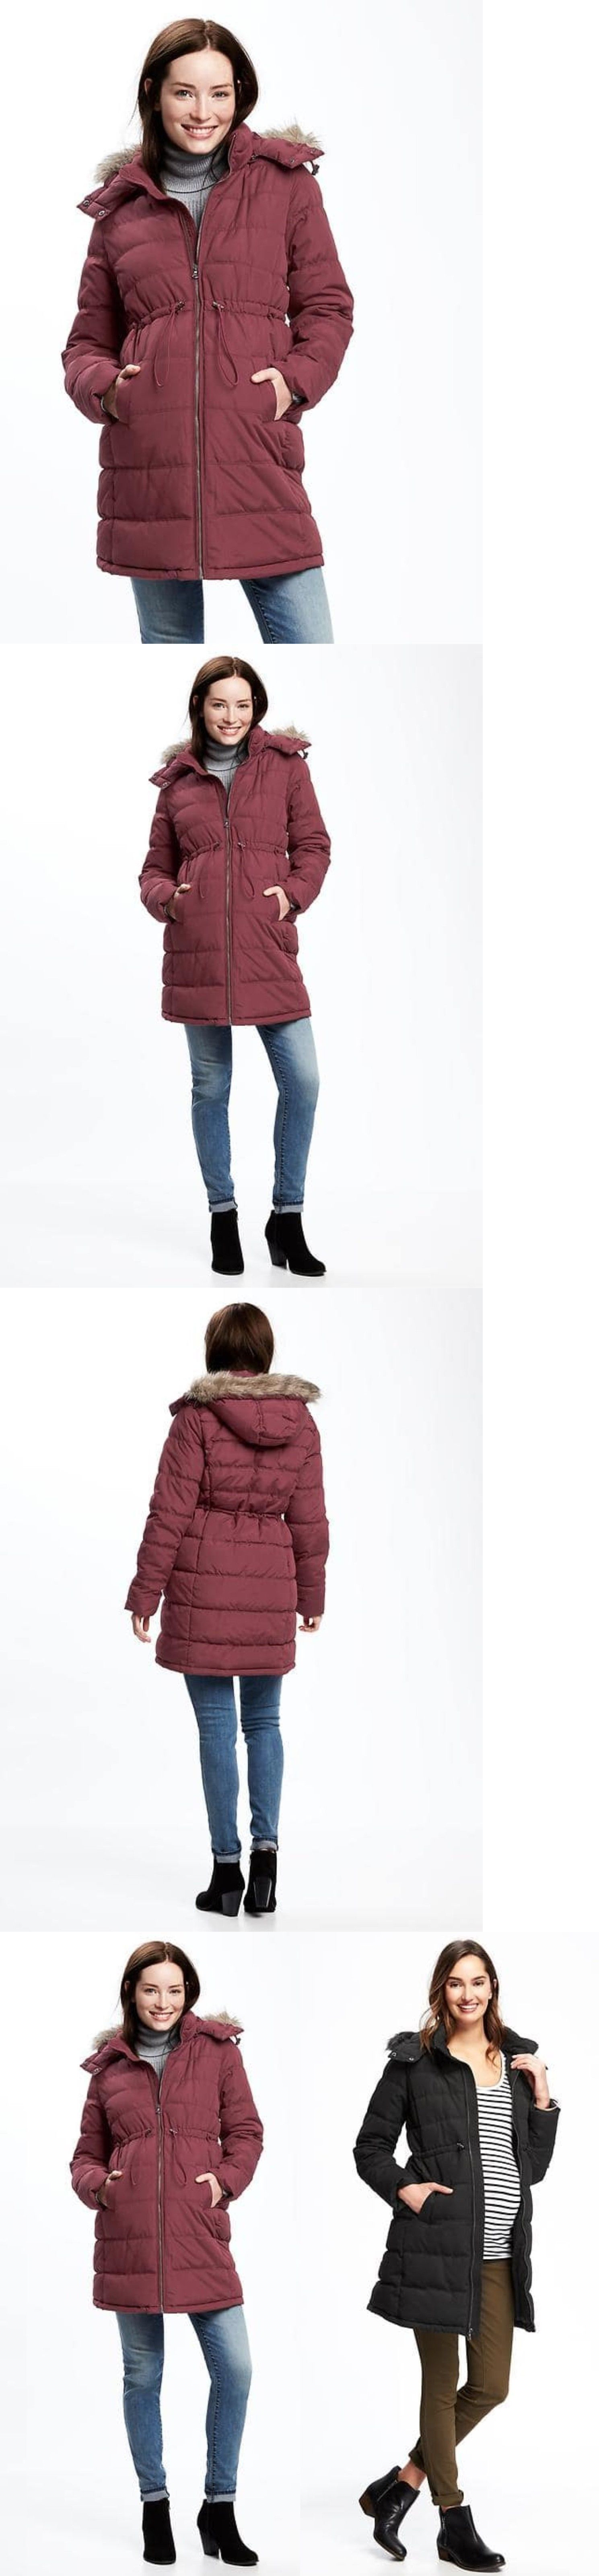 d6cd8d228fea6 Coats and Jackets 63856: Old Navy Nwt Maternity Hooded Frost Free Puffer  Parka Coat Jacket M -> BUY IT NOW ONLY: $69 on eBay!